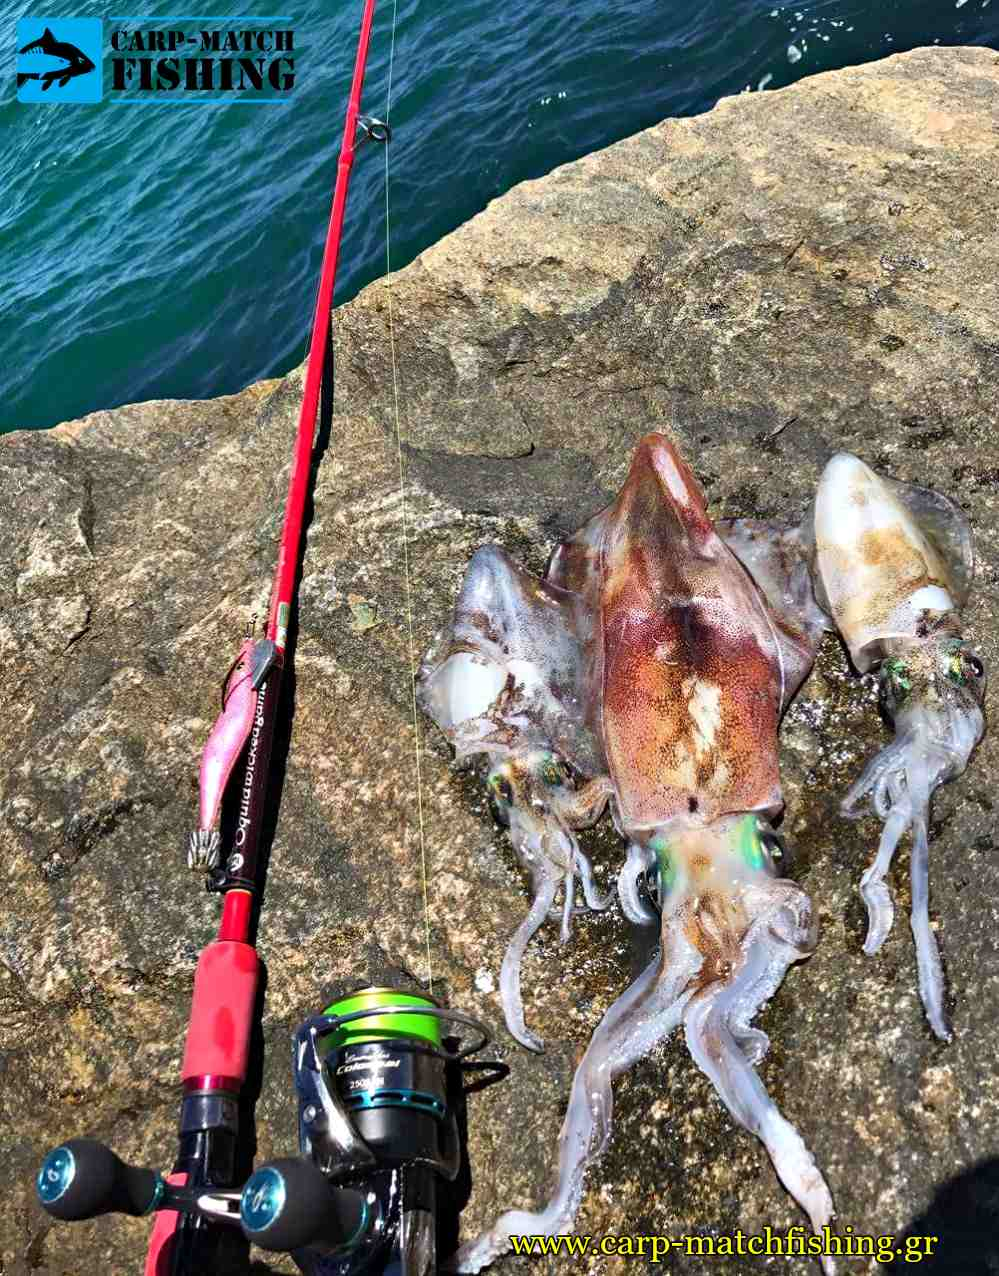 eging fuii of squids on the rocks vraxia carpmatchfishing